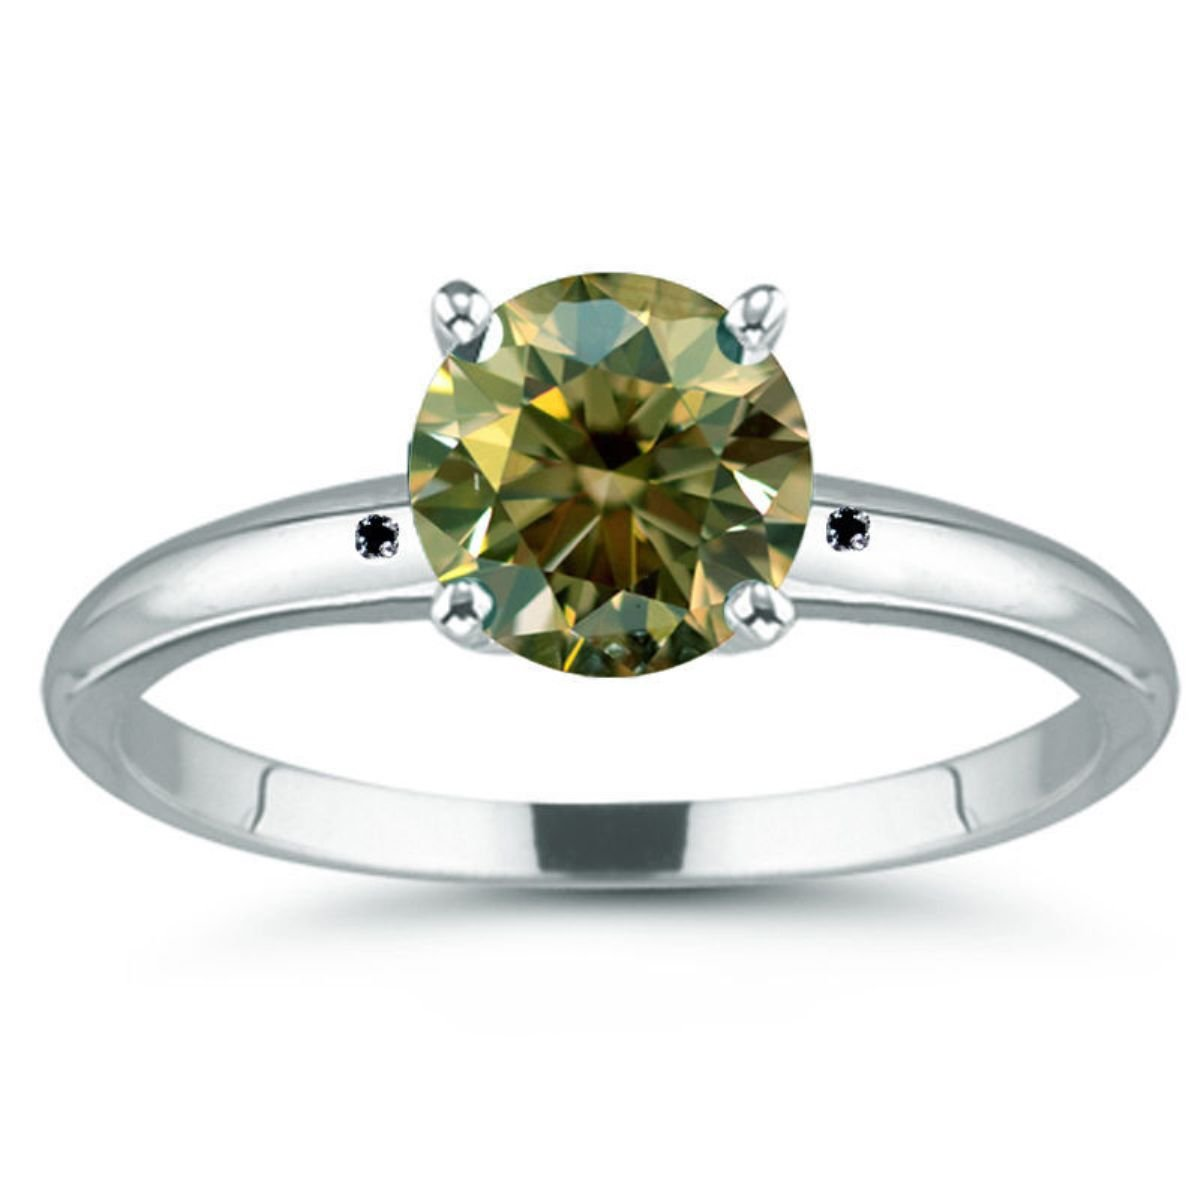 RINGJEWEL 3.27 ct VVS1 Round Moissanite Solitaire Engagement Silver Plated Ring Green Brown Color Size 7 by RINGJEWEL